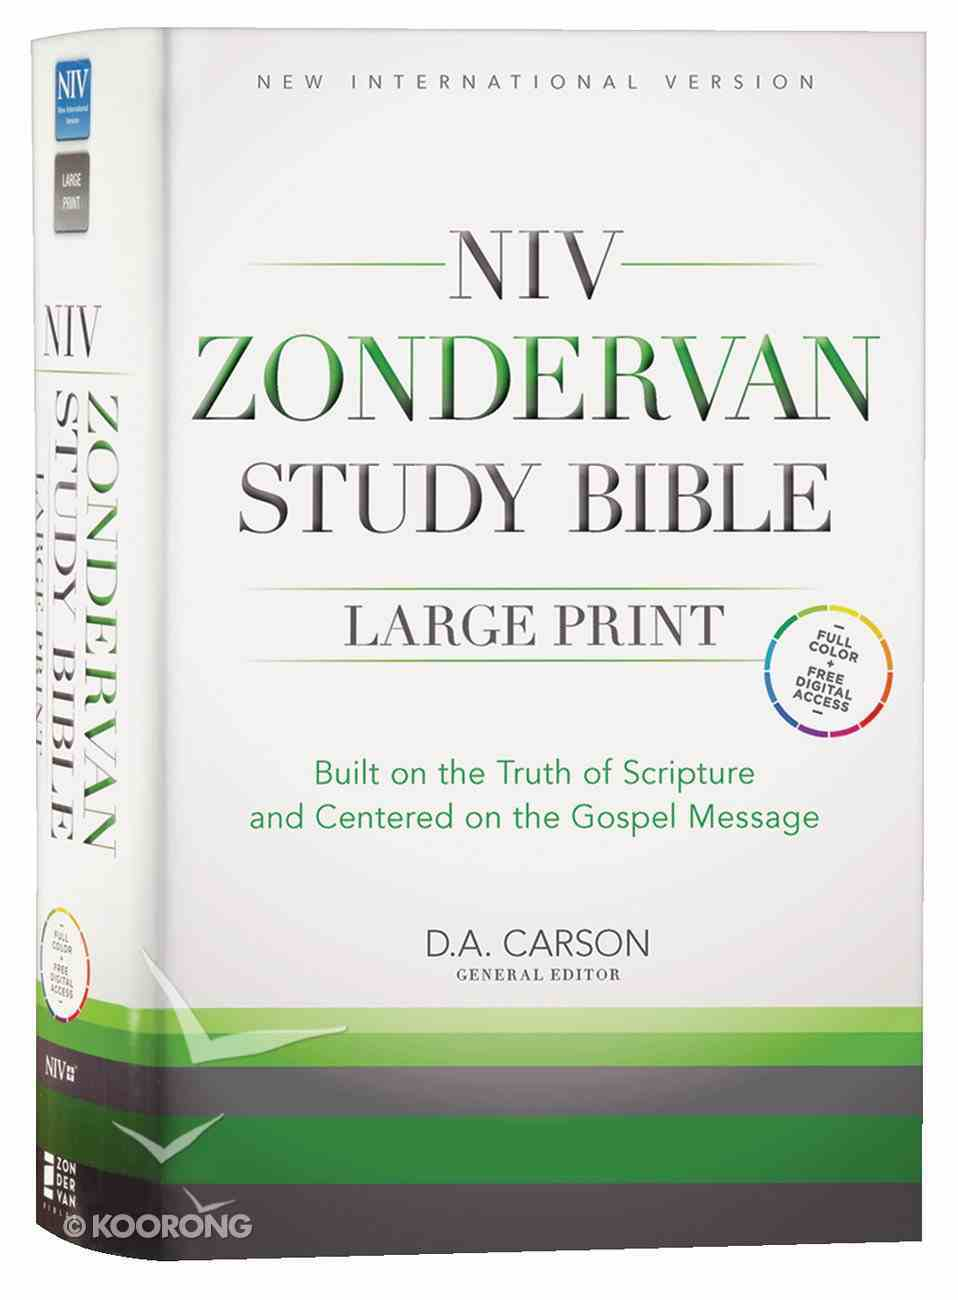 NIV Zondervan Study Bible Full Colour Large Print Hardback